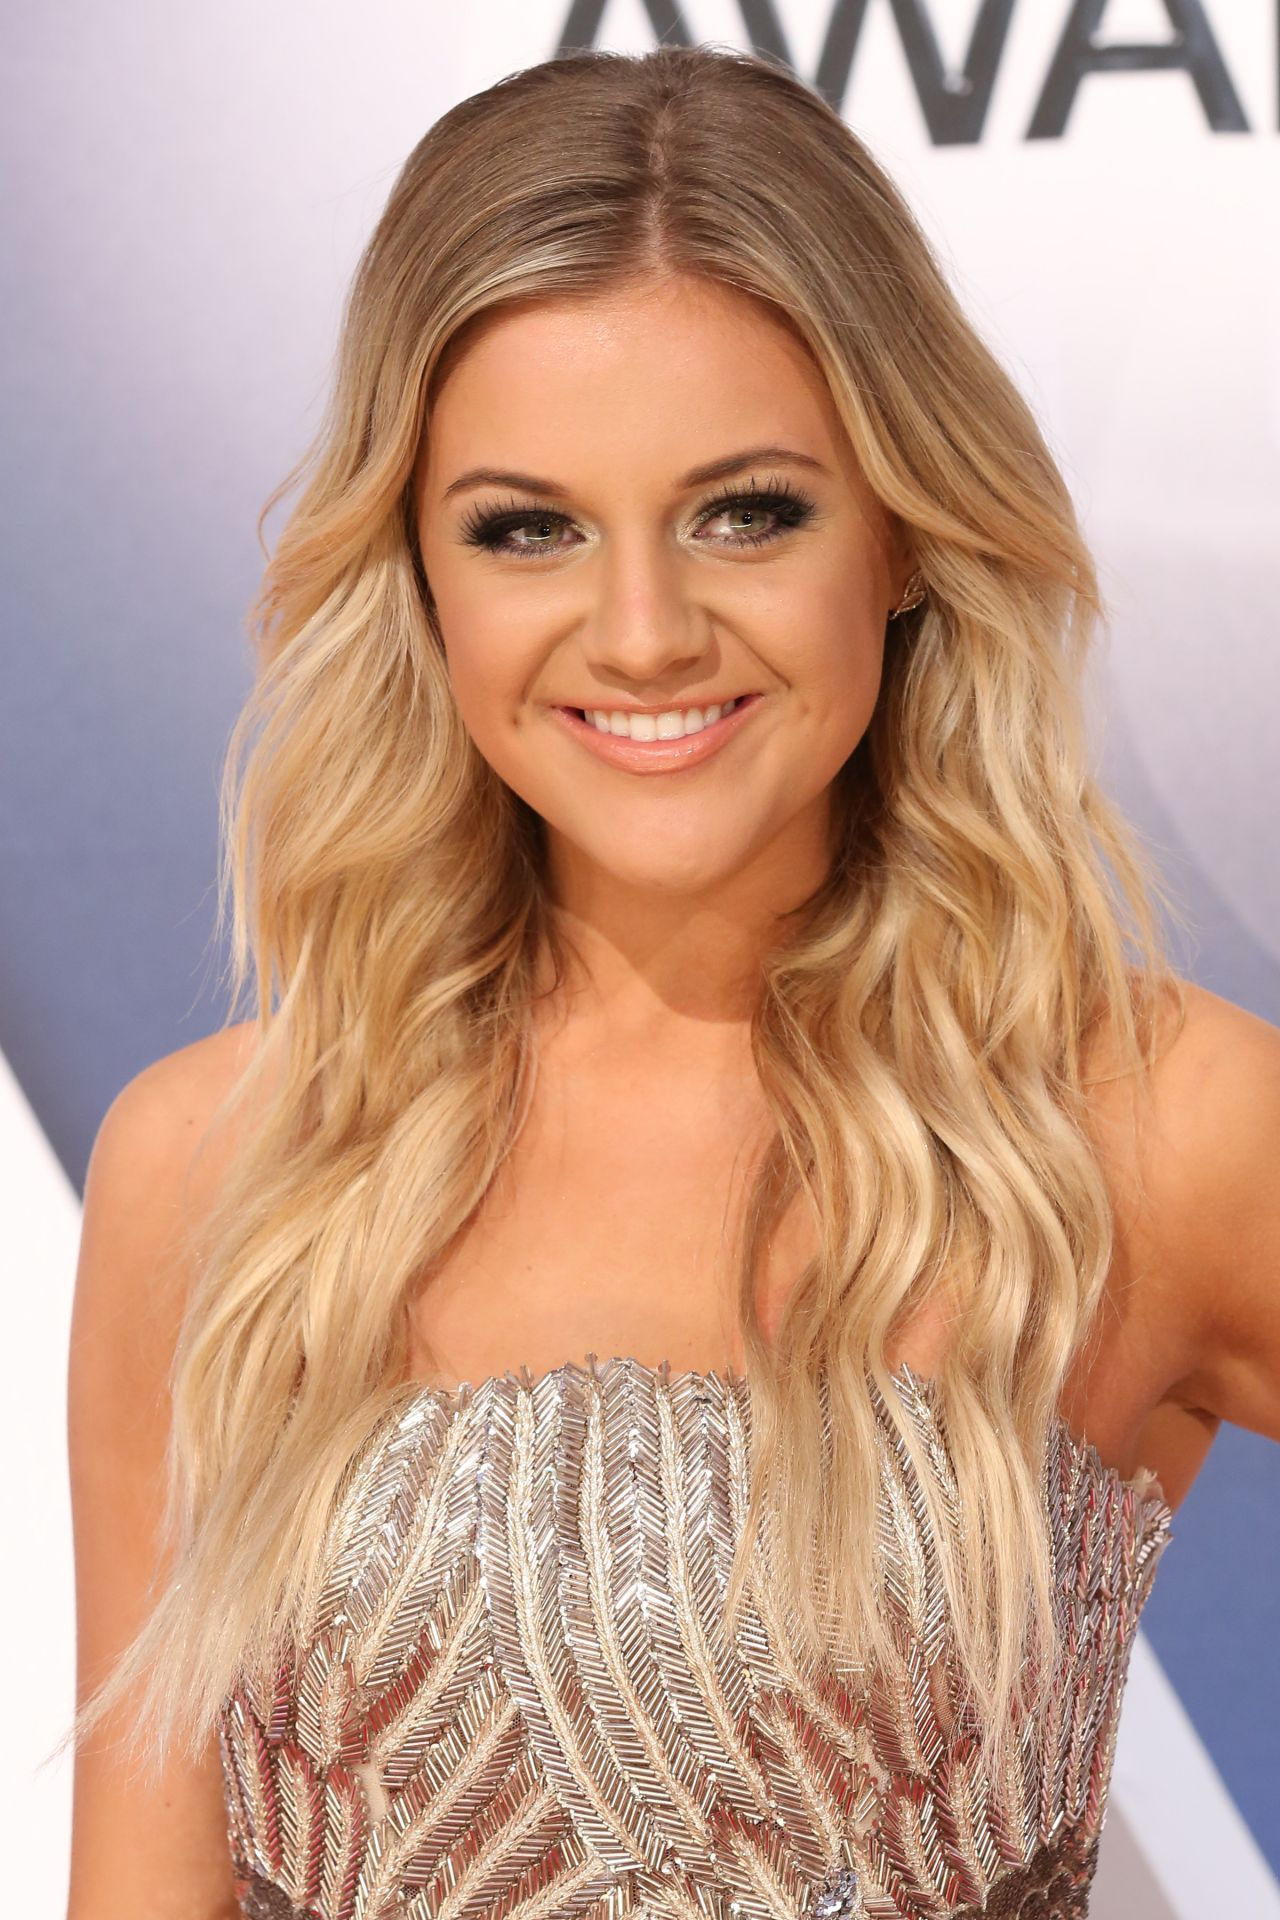 Image result for kelsea ballerini